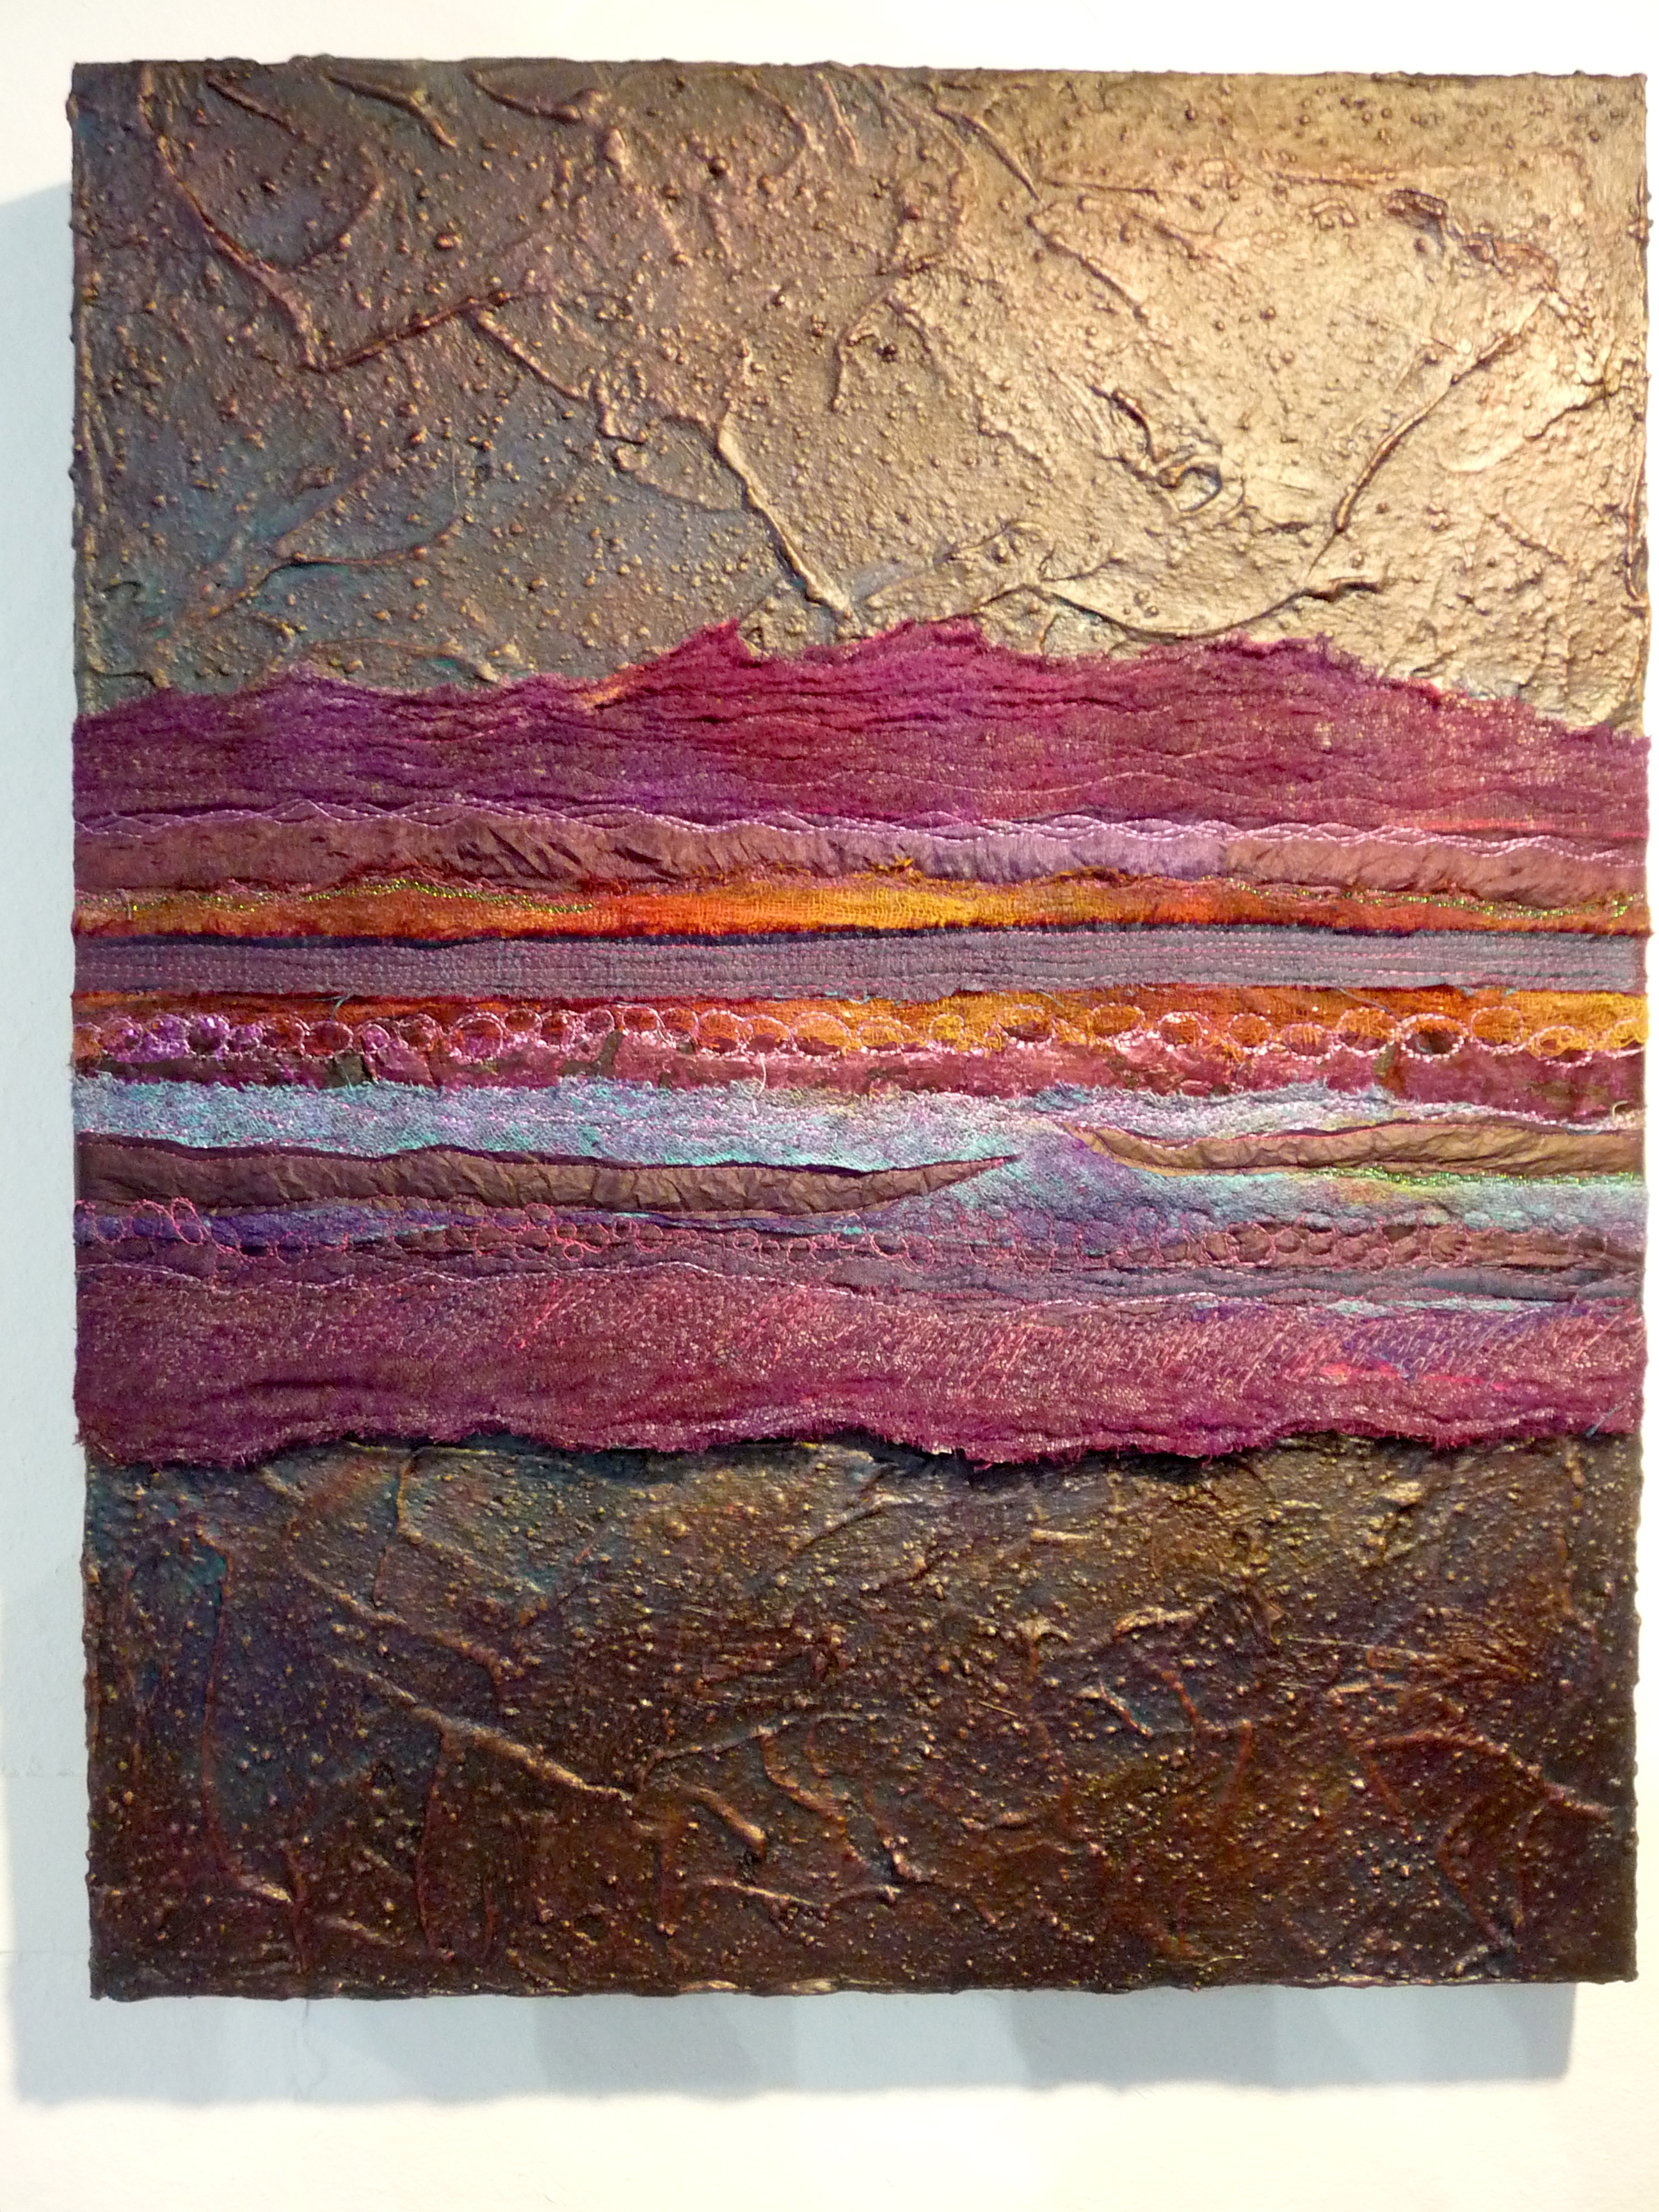 PURPLE HAZE by Carol McFee, mixed media, lutrador, tissue, silk, foil, paper, paint and stitch